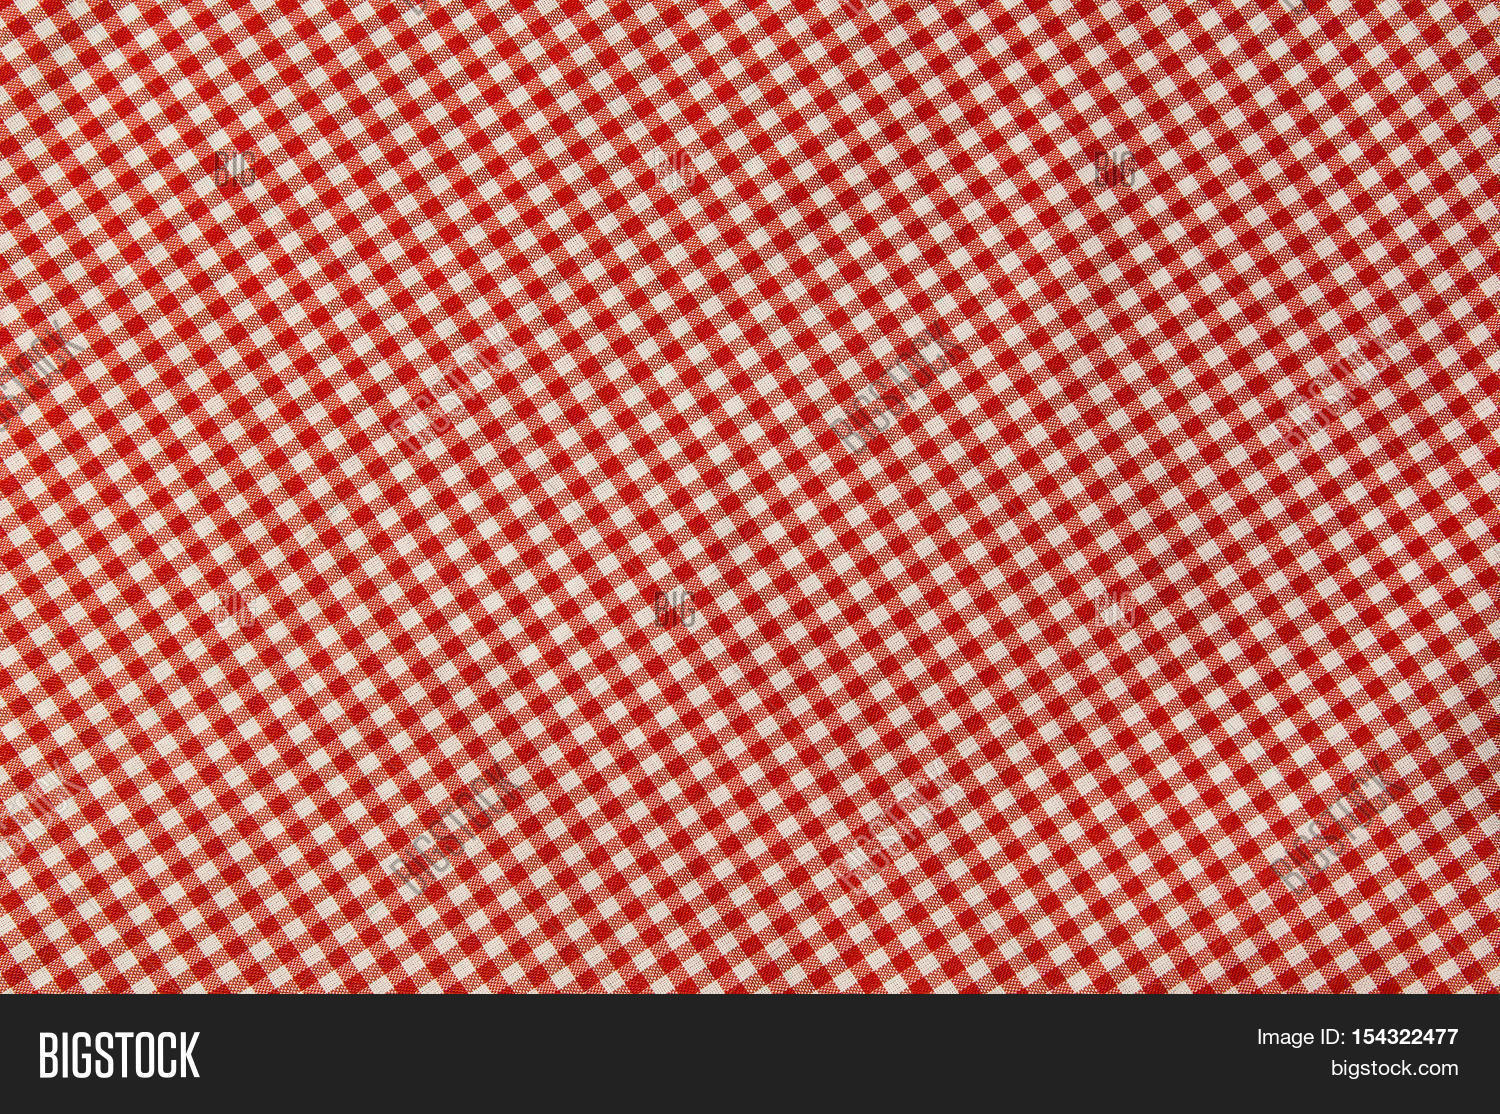 Red And White Checkered Tablecloth Texture Background